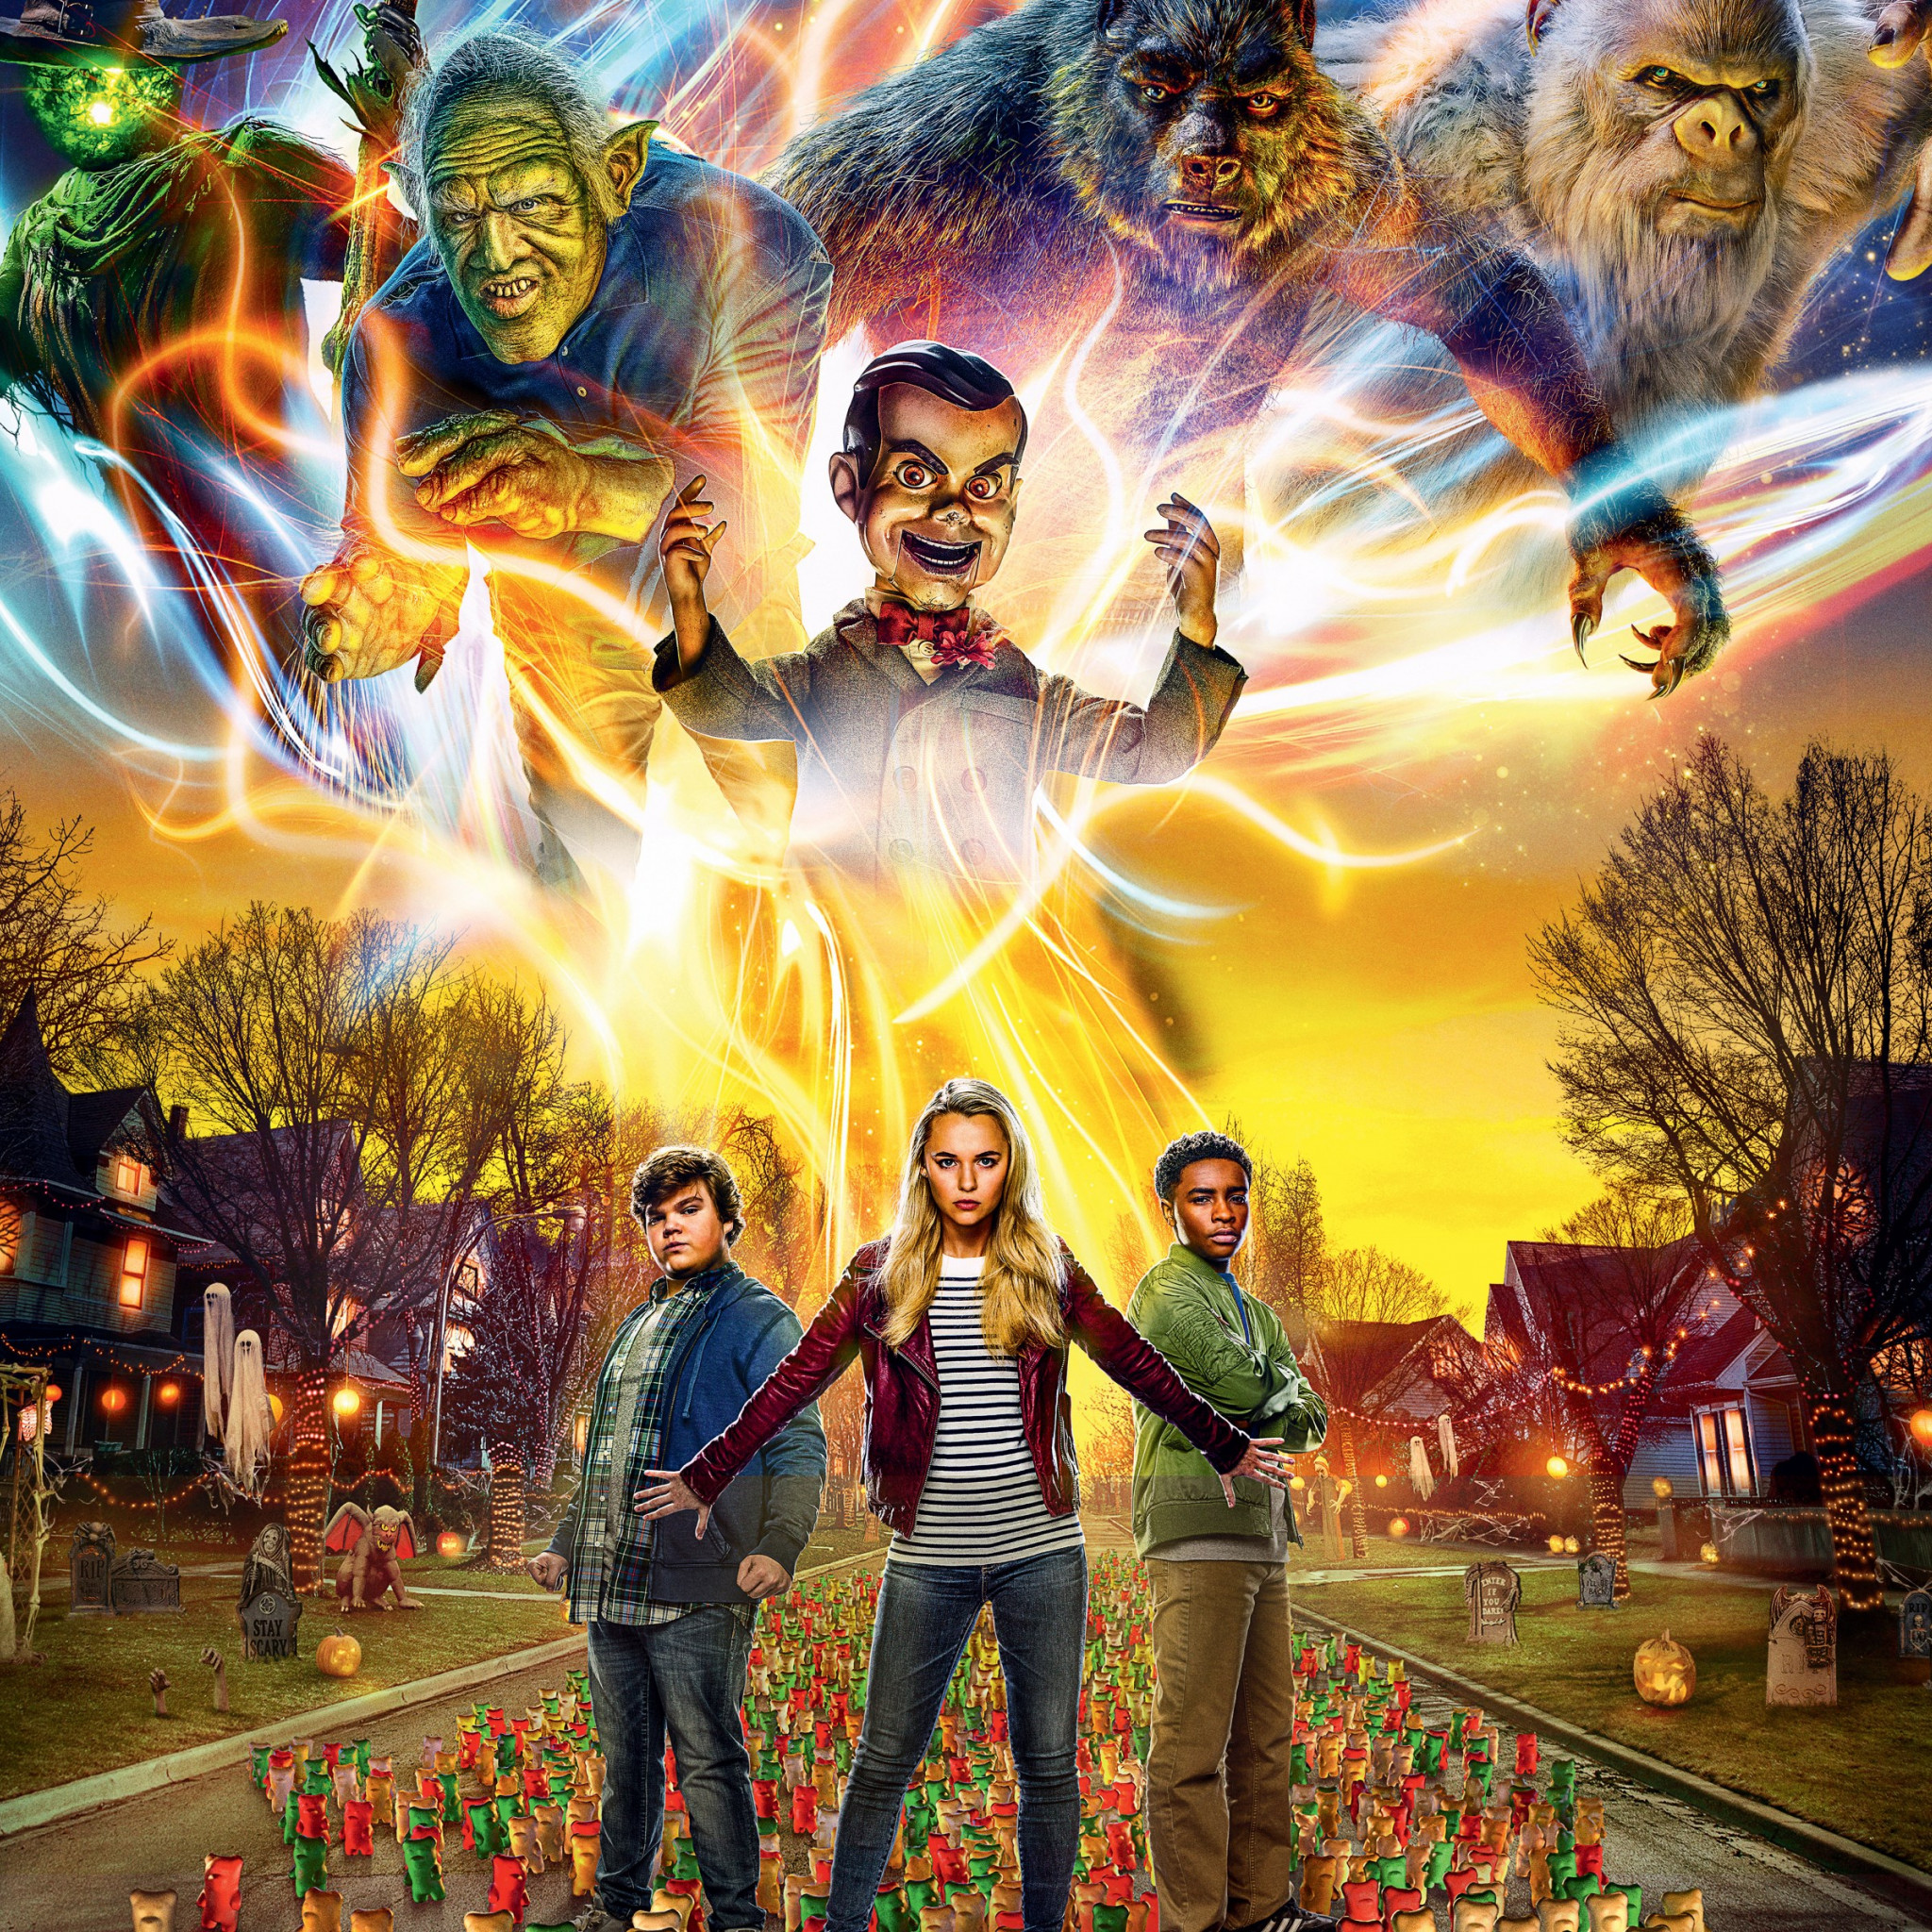 Goosebumps 2: Haunted Halloween wallpaper 2048x2048